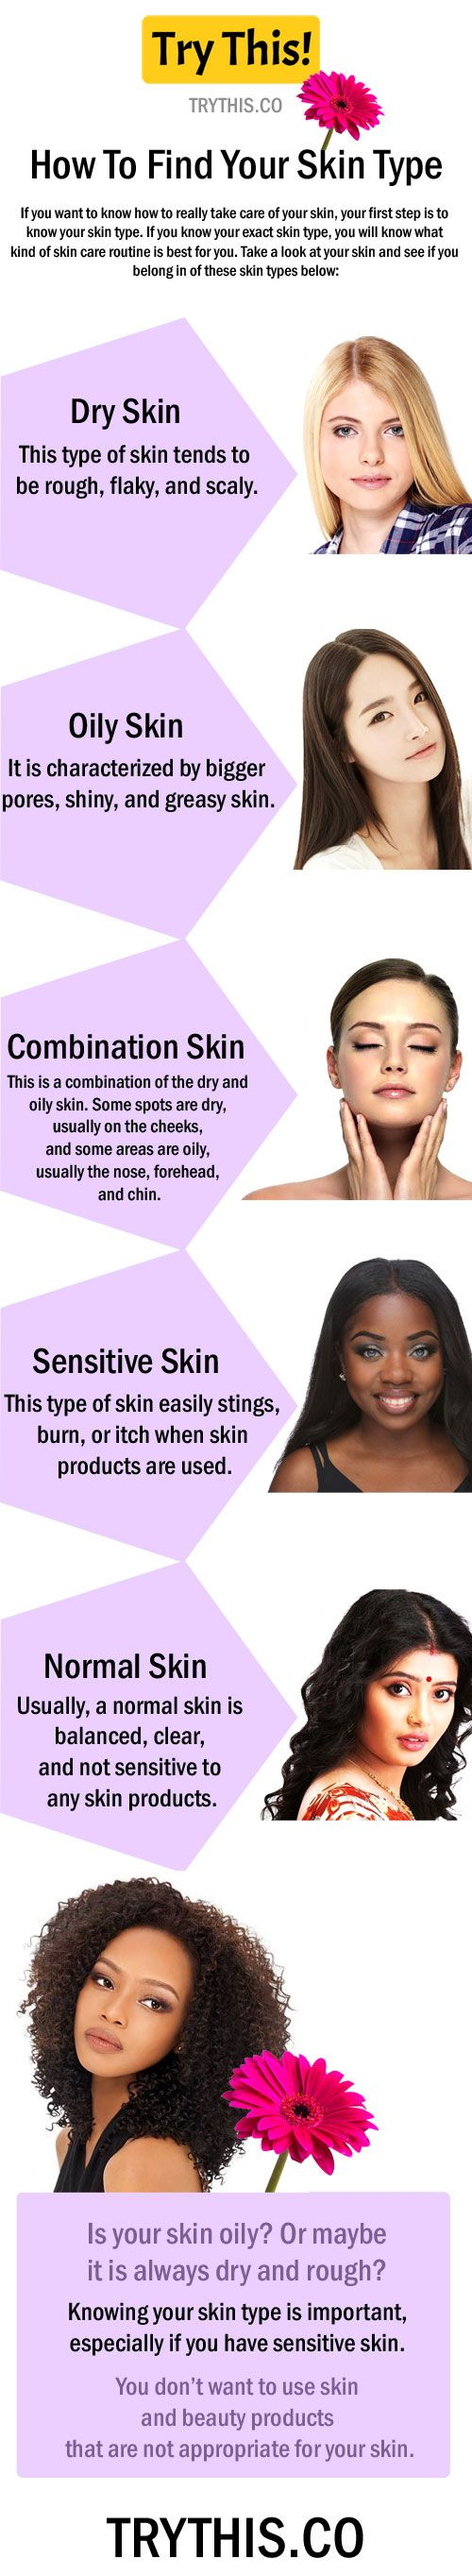 Skin Care Routine How To Find Your Skin Type Skin Care Normal Skin Skin